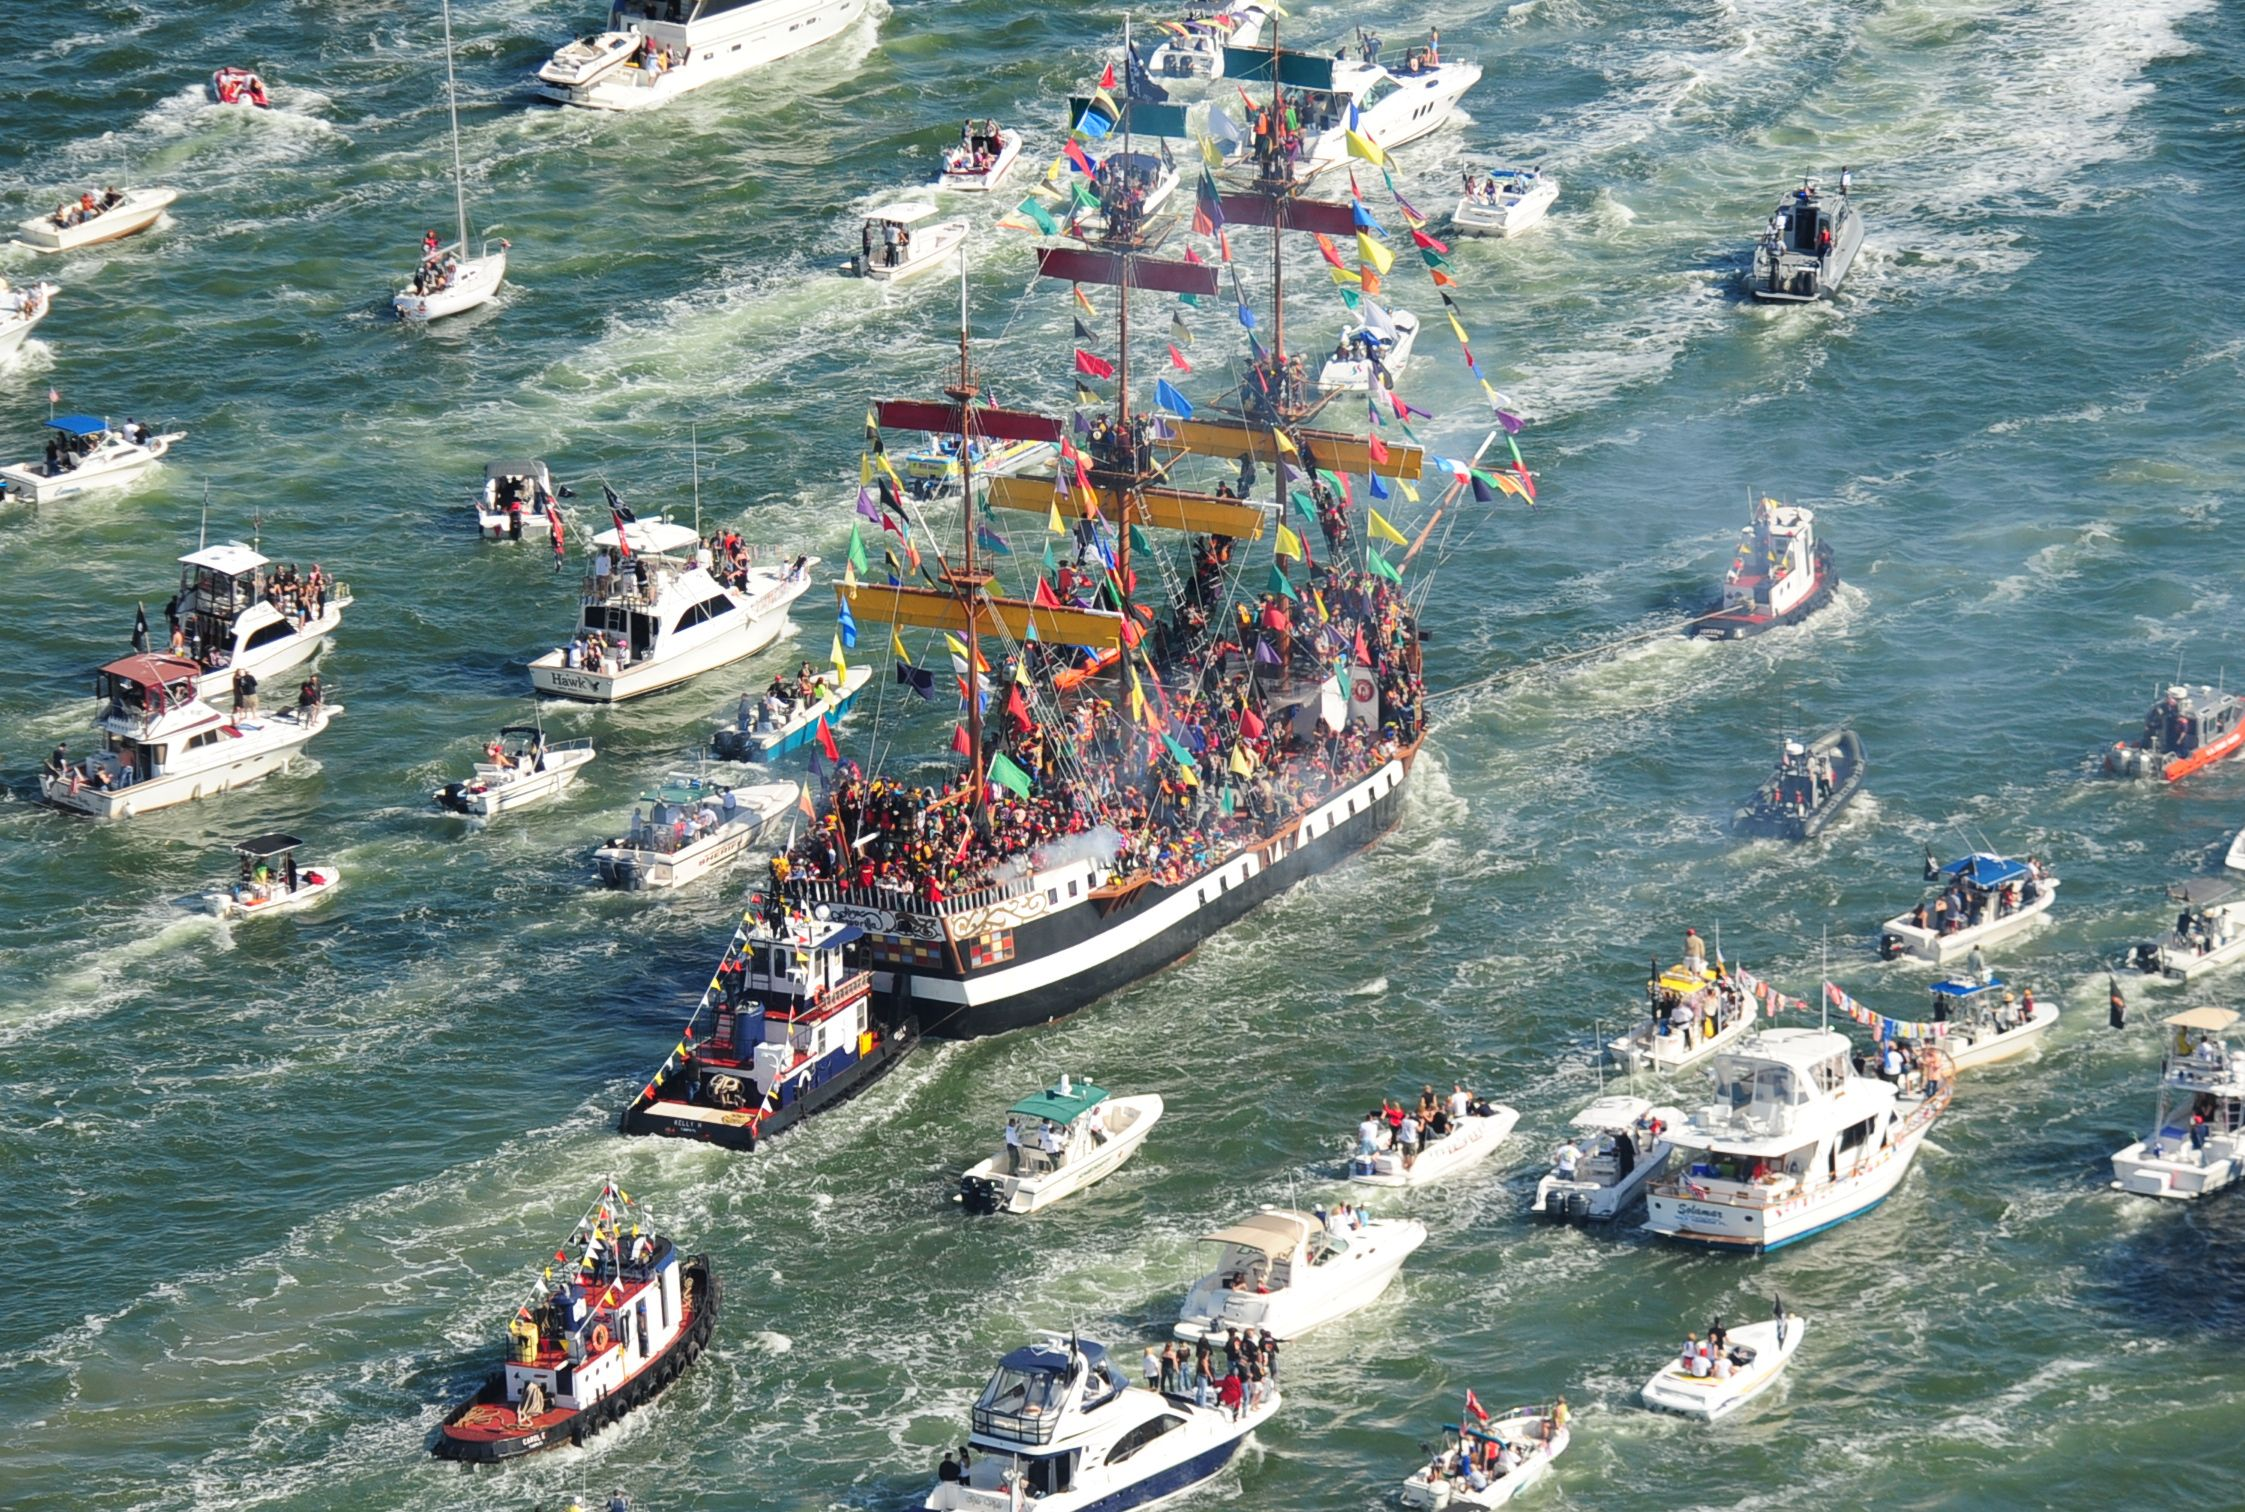 #Gasparilla pirate invasion #Tampa, #CarCreditTampa Happy Customer!  #YOUareAPPROVED, #UsedCars, www.carcredittampa.com